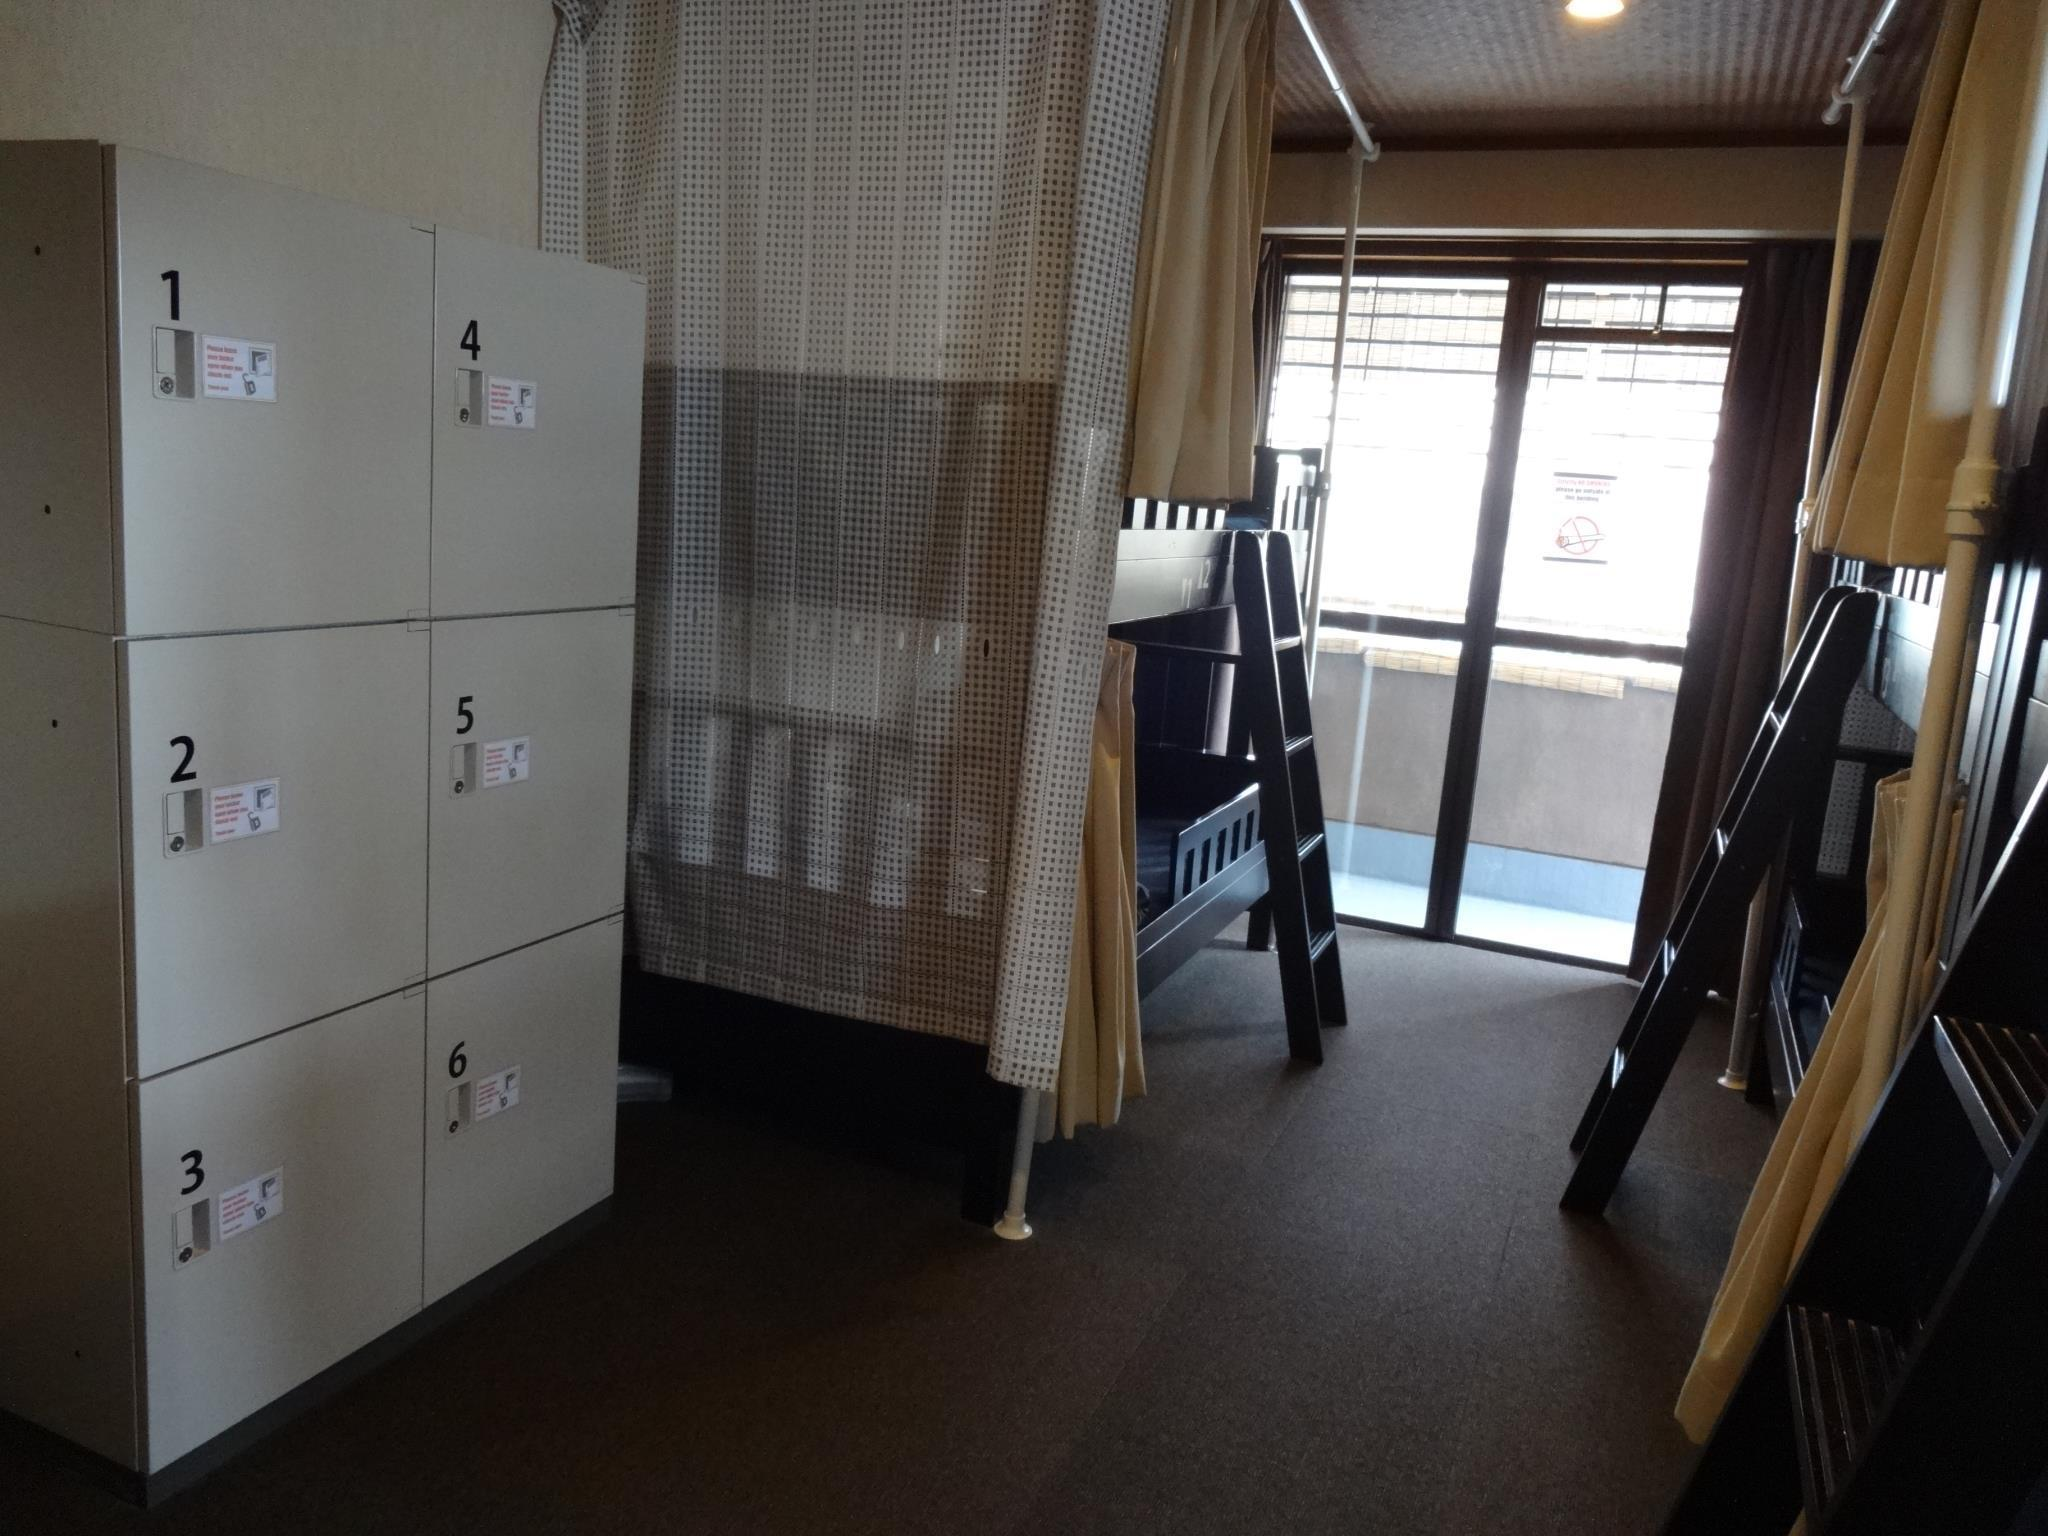 6床女性宿舍間的1個床位 (Bed in 6 Bed Female Dormitory Room)